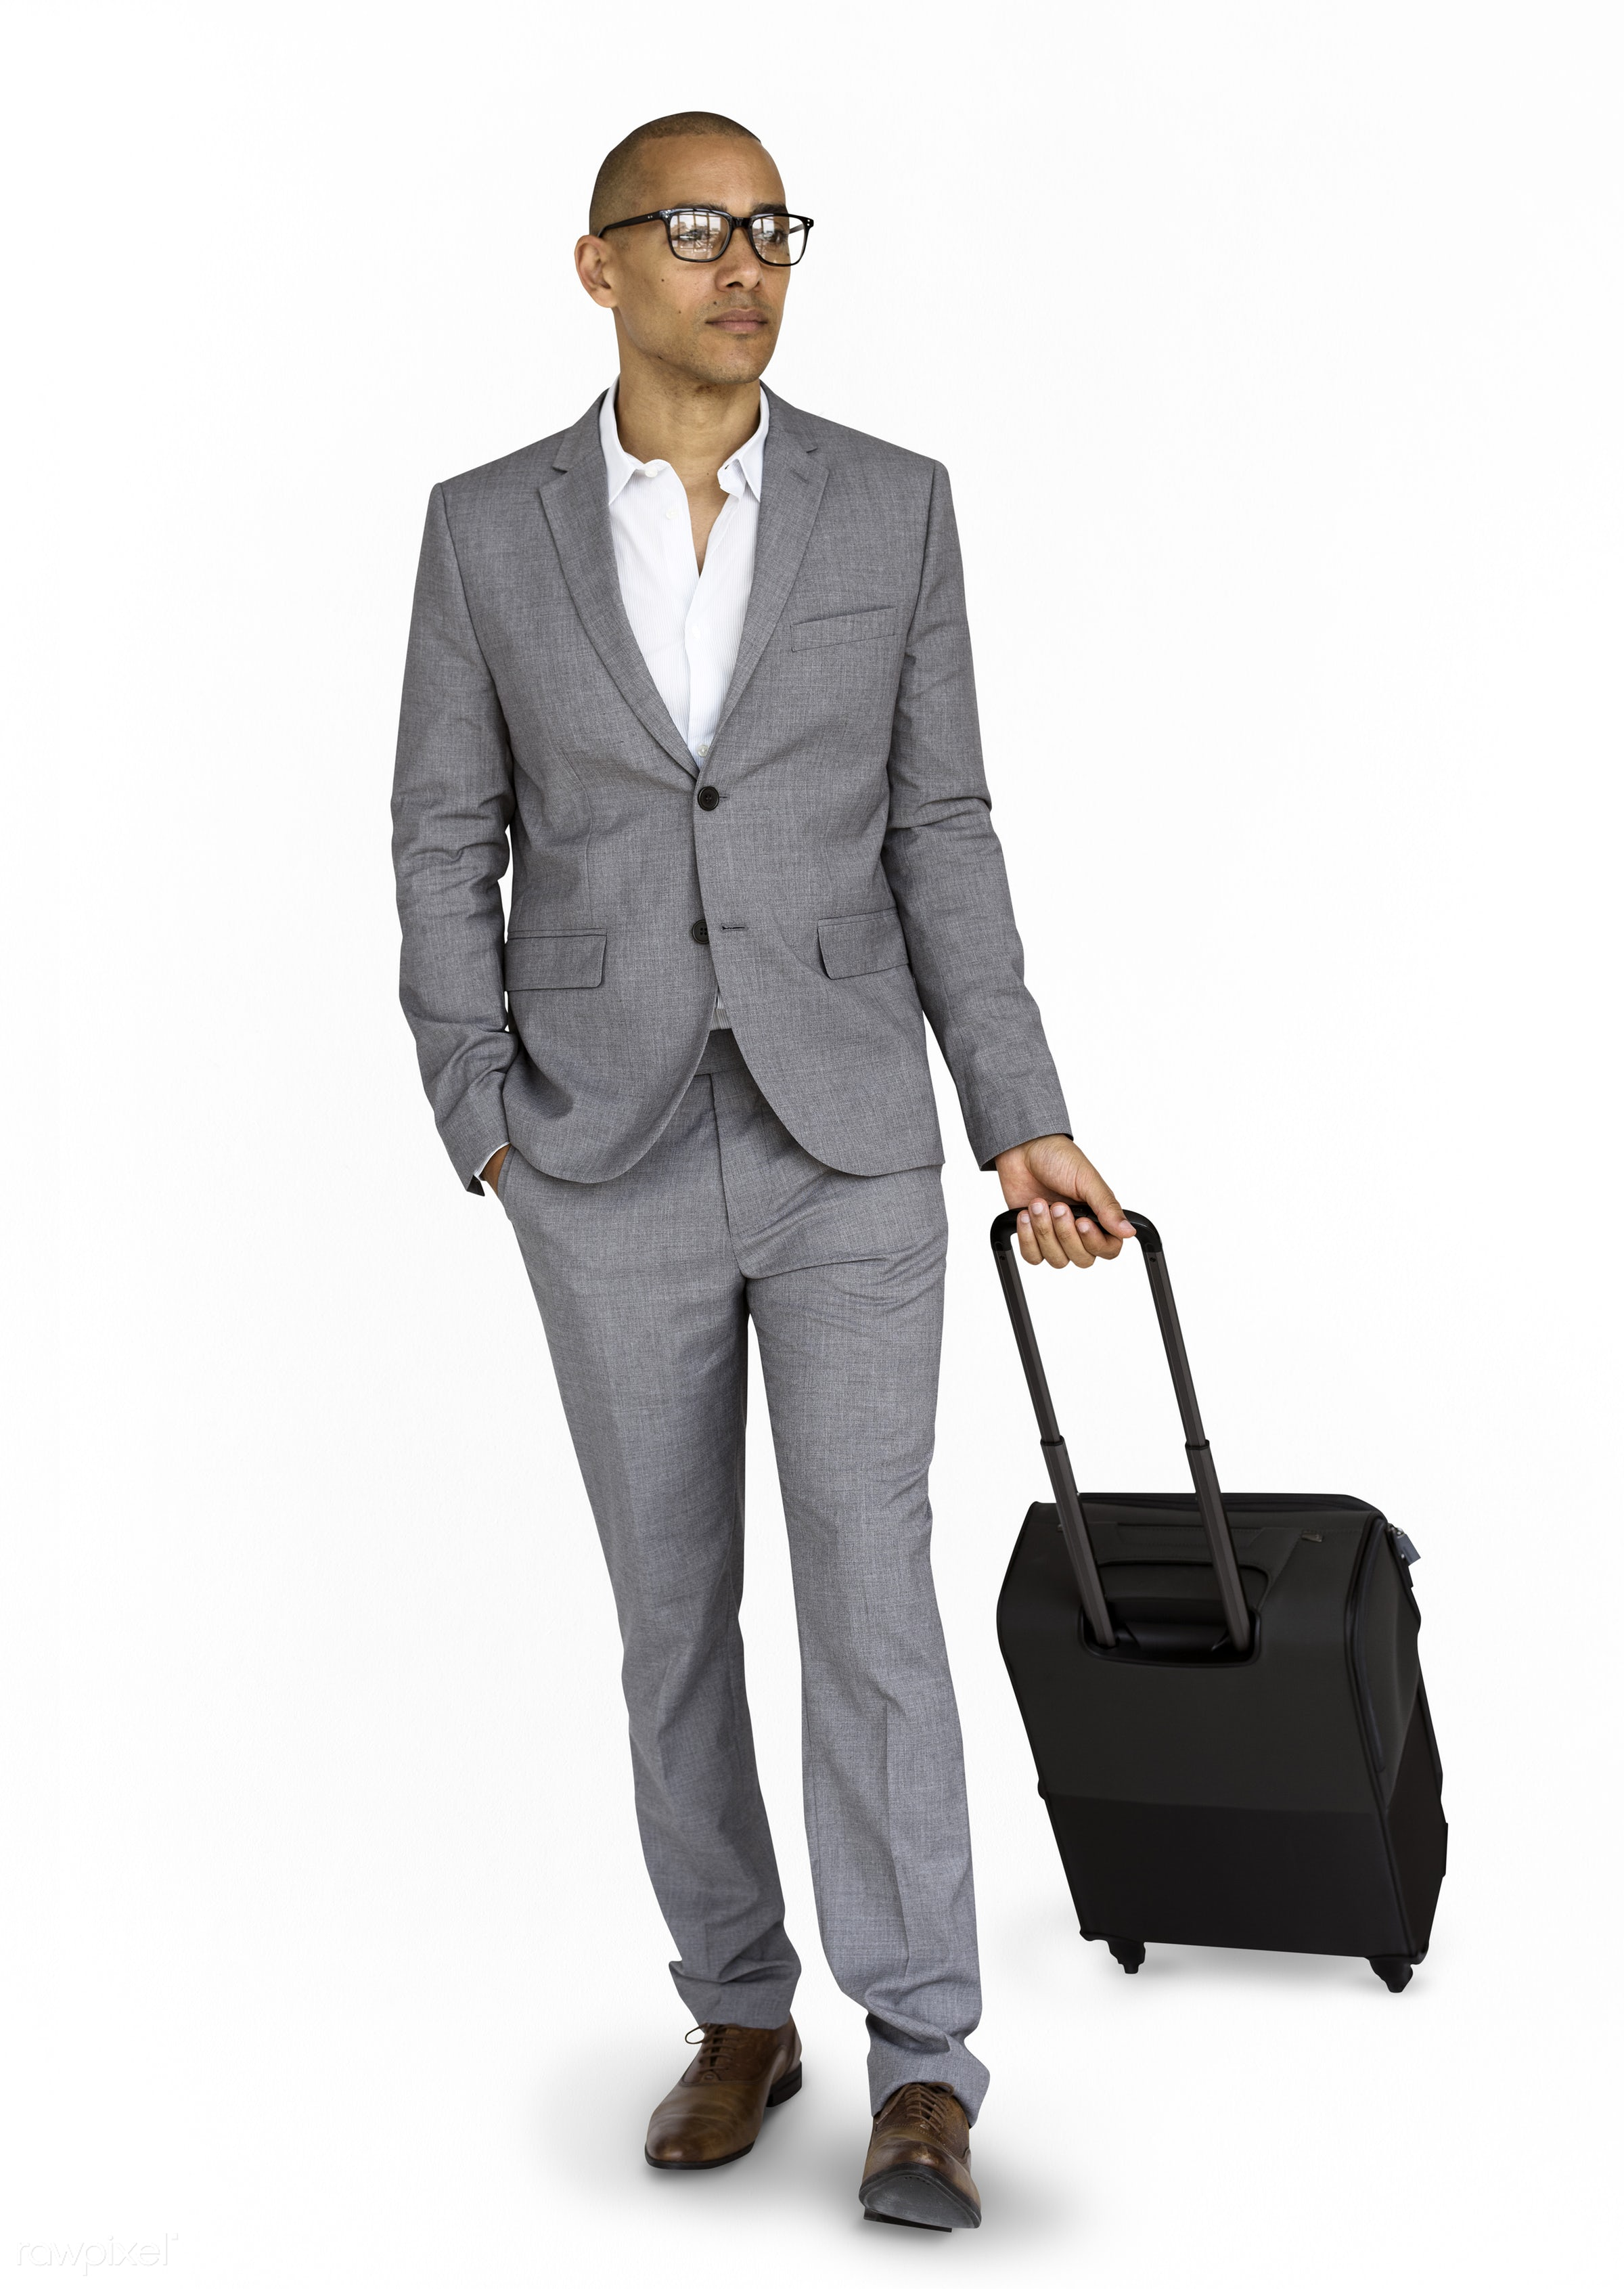 studio, face, person, glasses, isolated on white, travel, people, business, businessman, trip, man, isolated, suitcase, male...